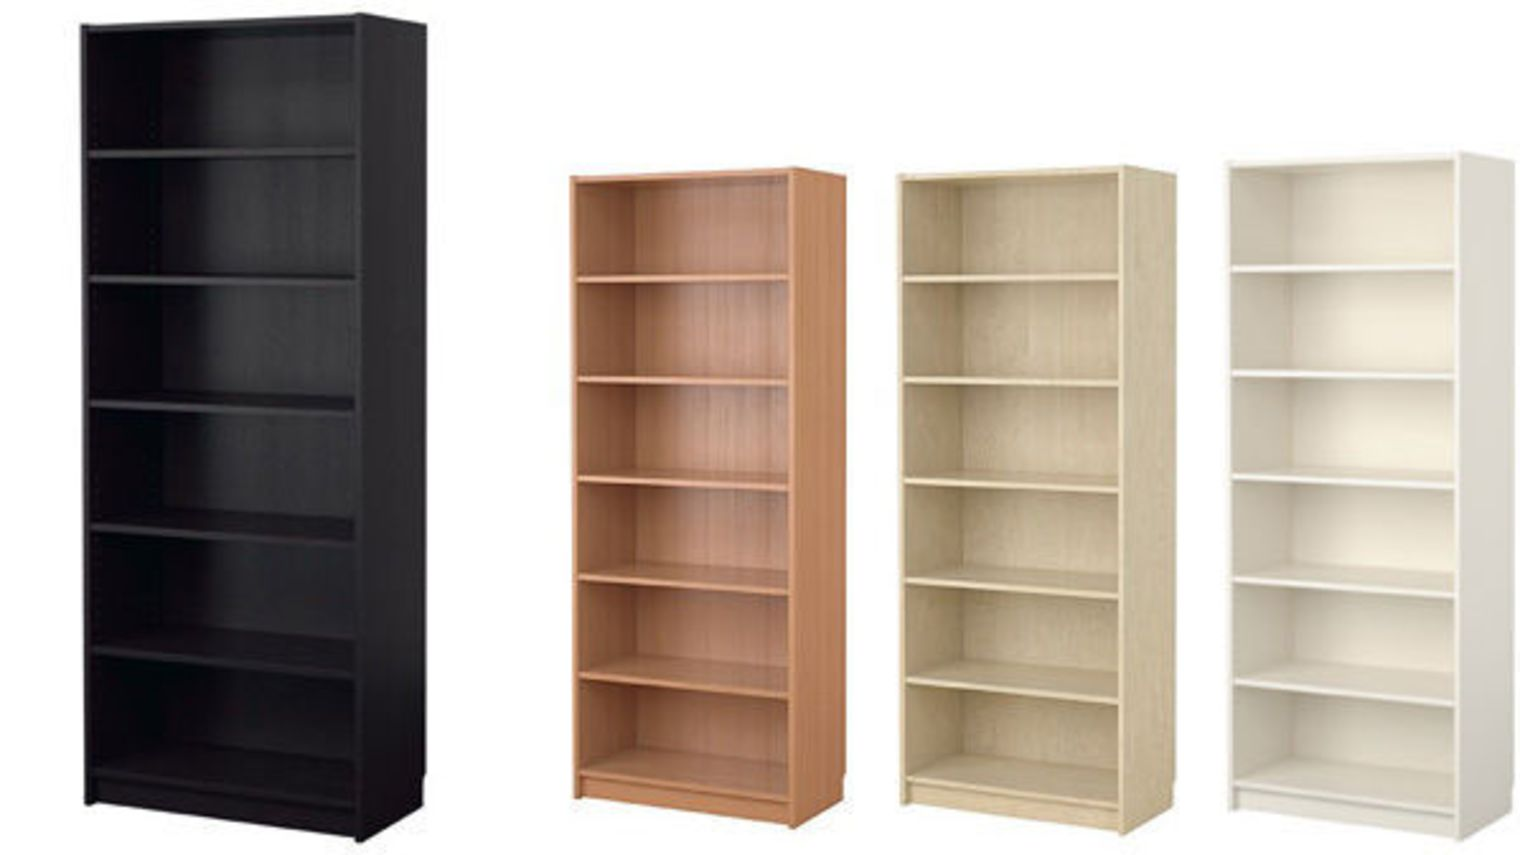 biblioth que pas cher bois id es de d coration int rieure french decor. Black Bedroom Furniture Sets. Home Design Ideas